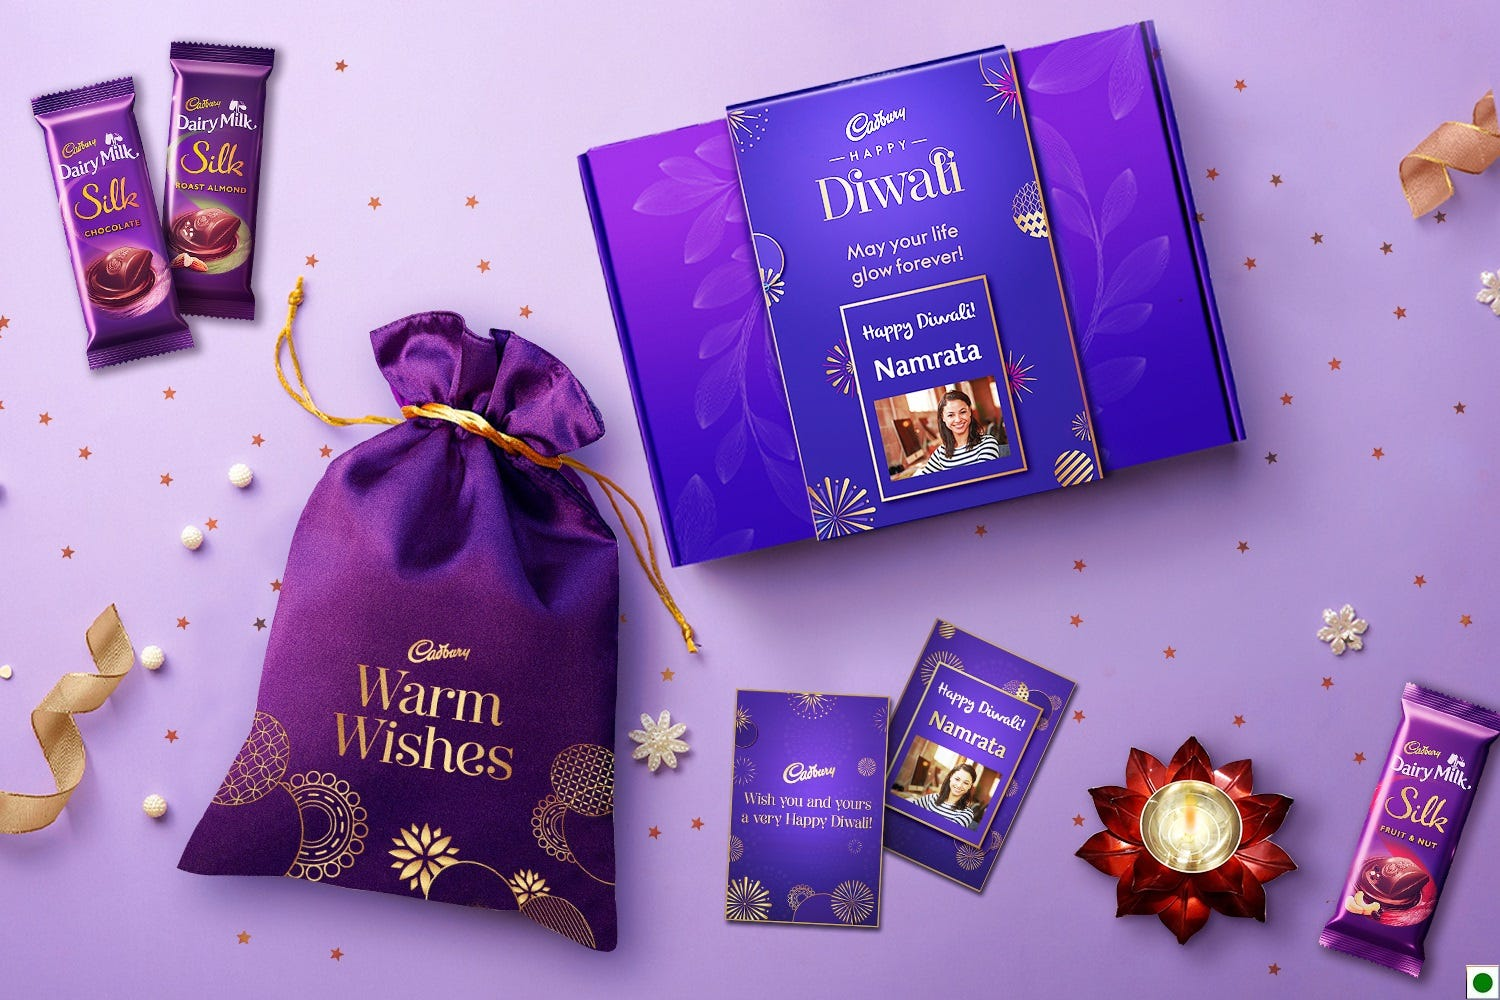 Diwali Celebration: 5 unconventional Ways of Celebrating Diwali with your loved ones